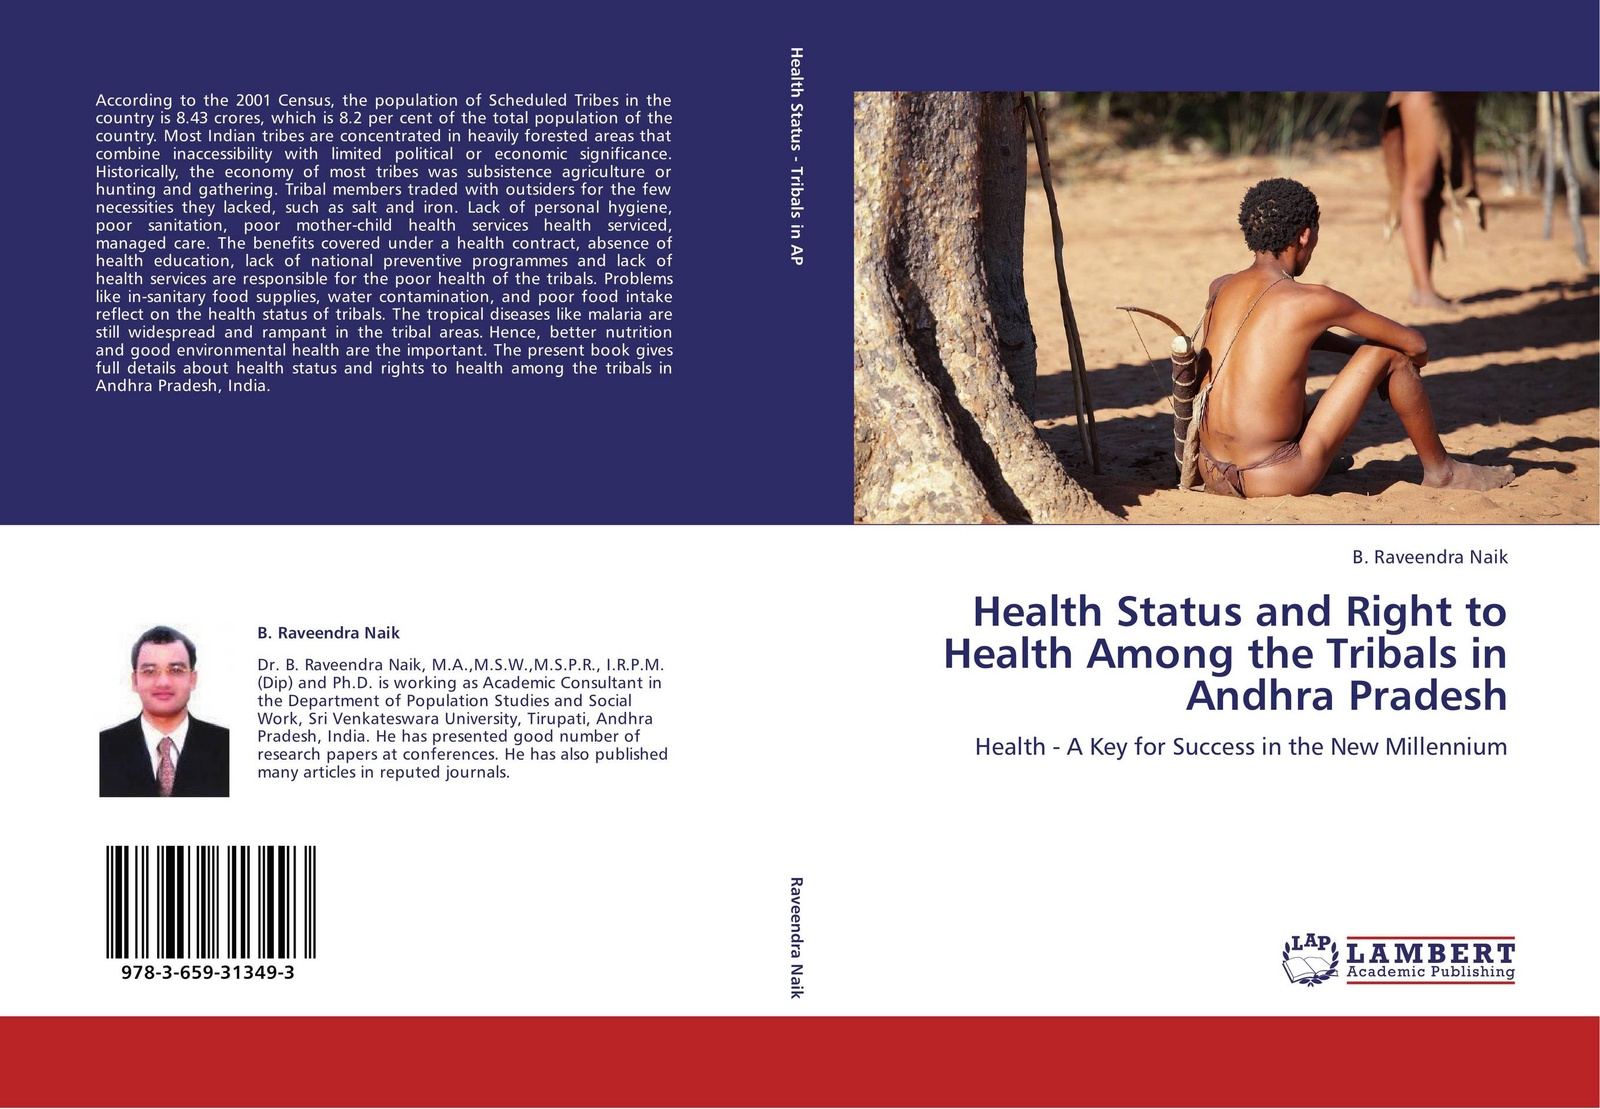 B. Raveendra Naik Health Status and Right to Health Among the Tribals in Andhra Pradesh abhishek kumar reproductive and child health among poor and non poor in urban india